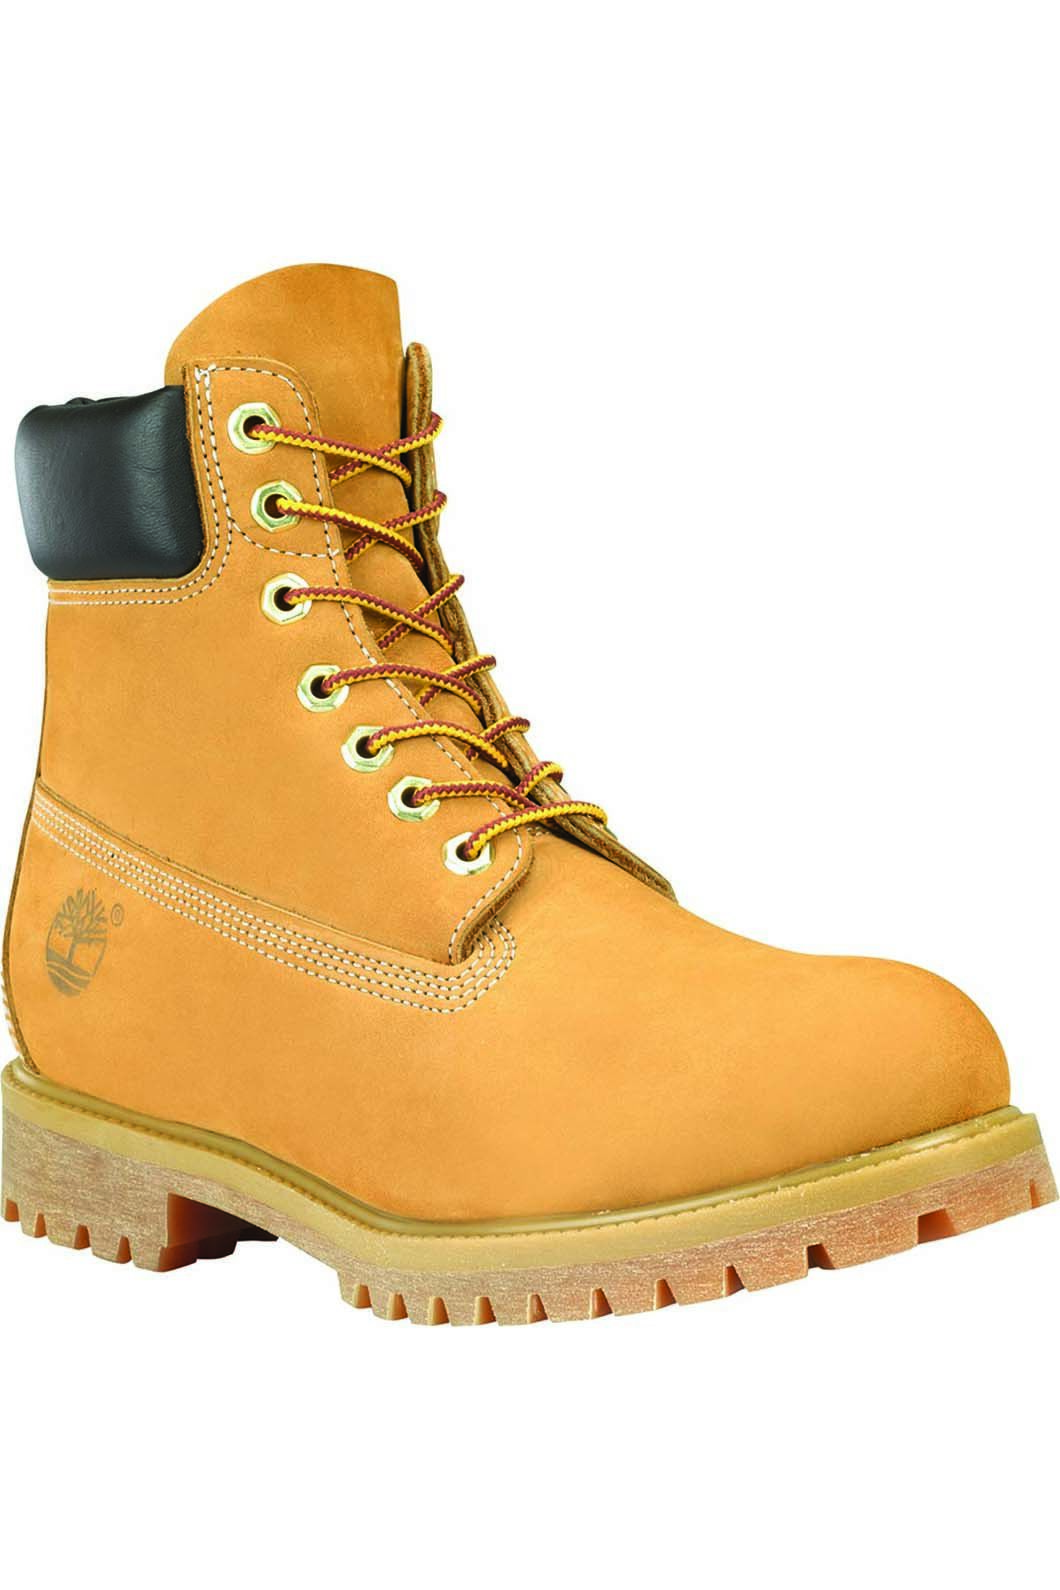 Timberland Men's Premium 6 Inch Boots Wheat Nubuck, WHEAT NUBUCK, hi-res